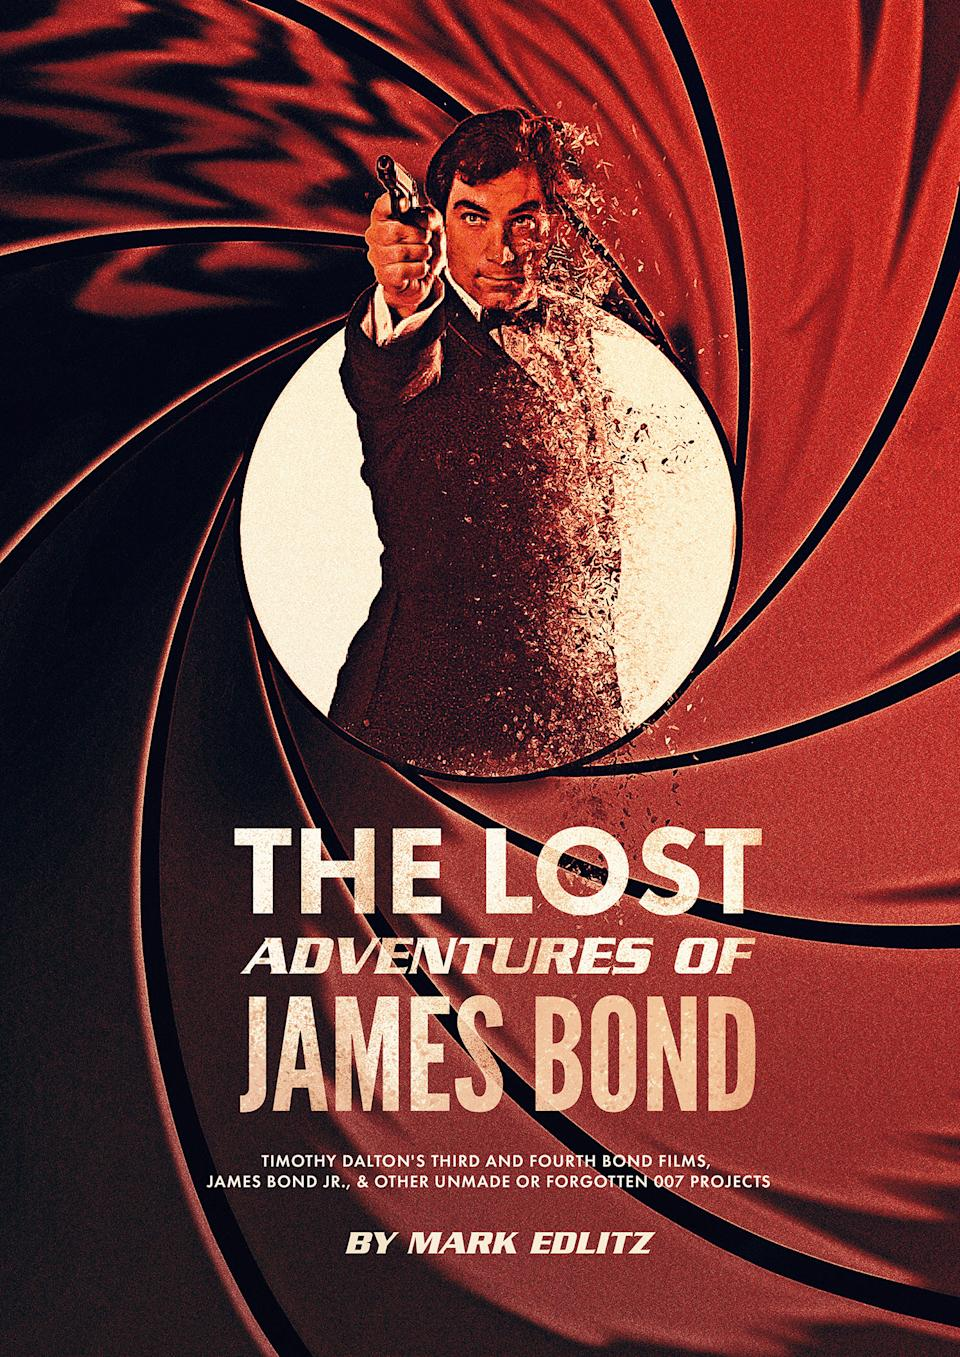 The cover for The Lost Adventures of James Bond.